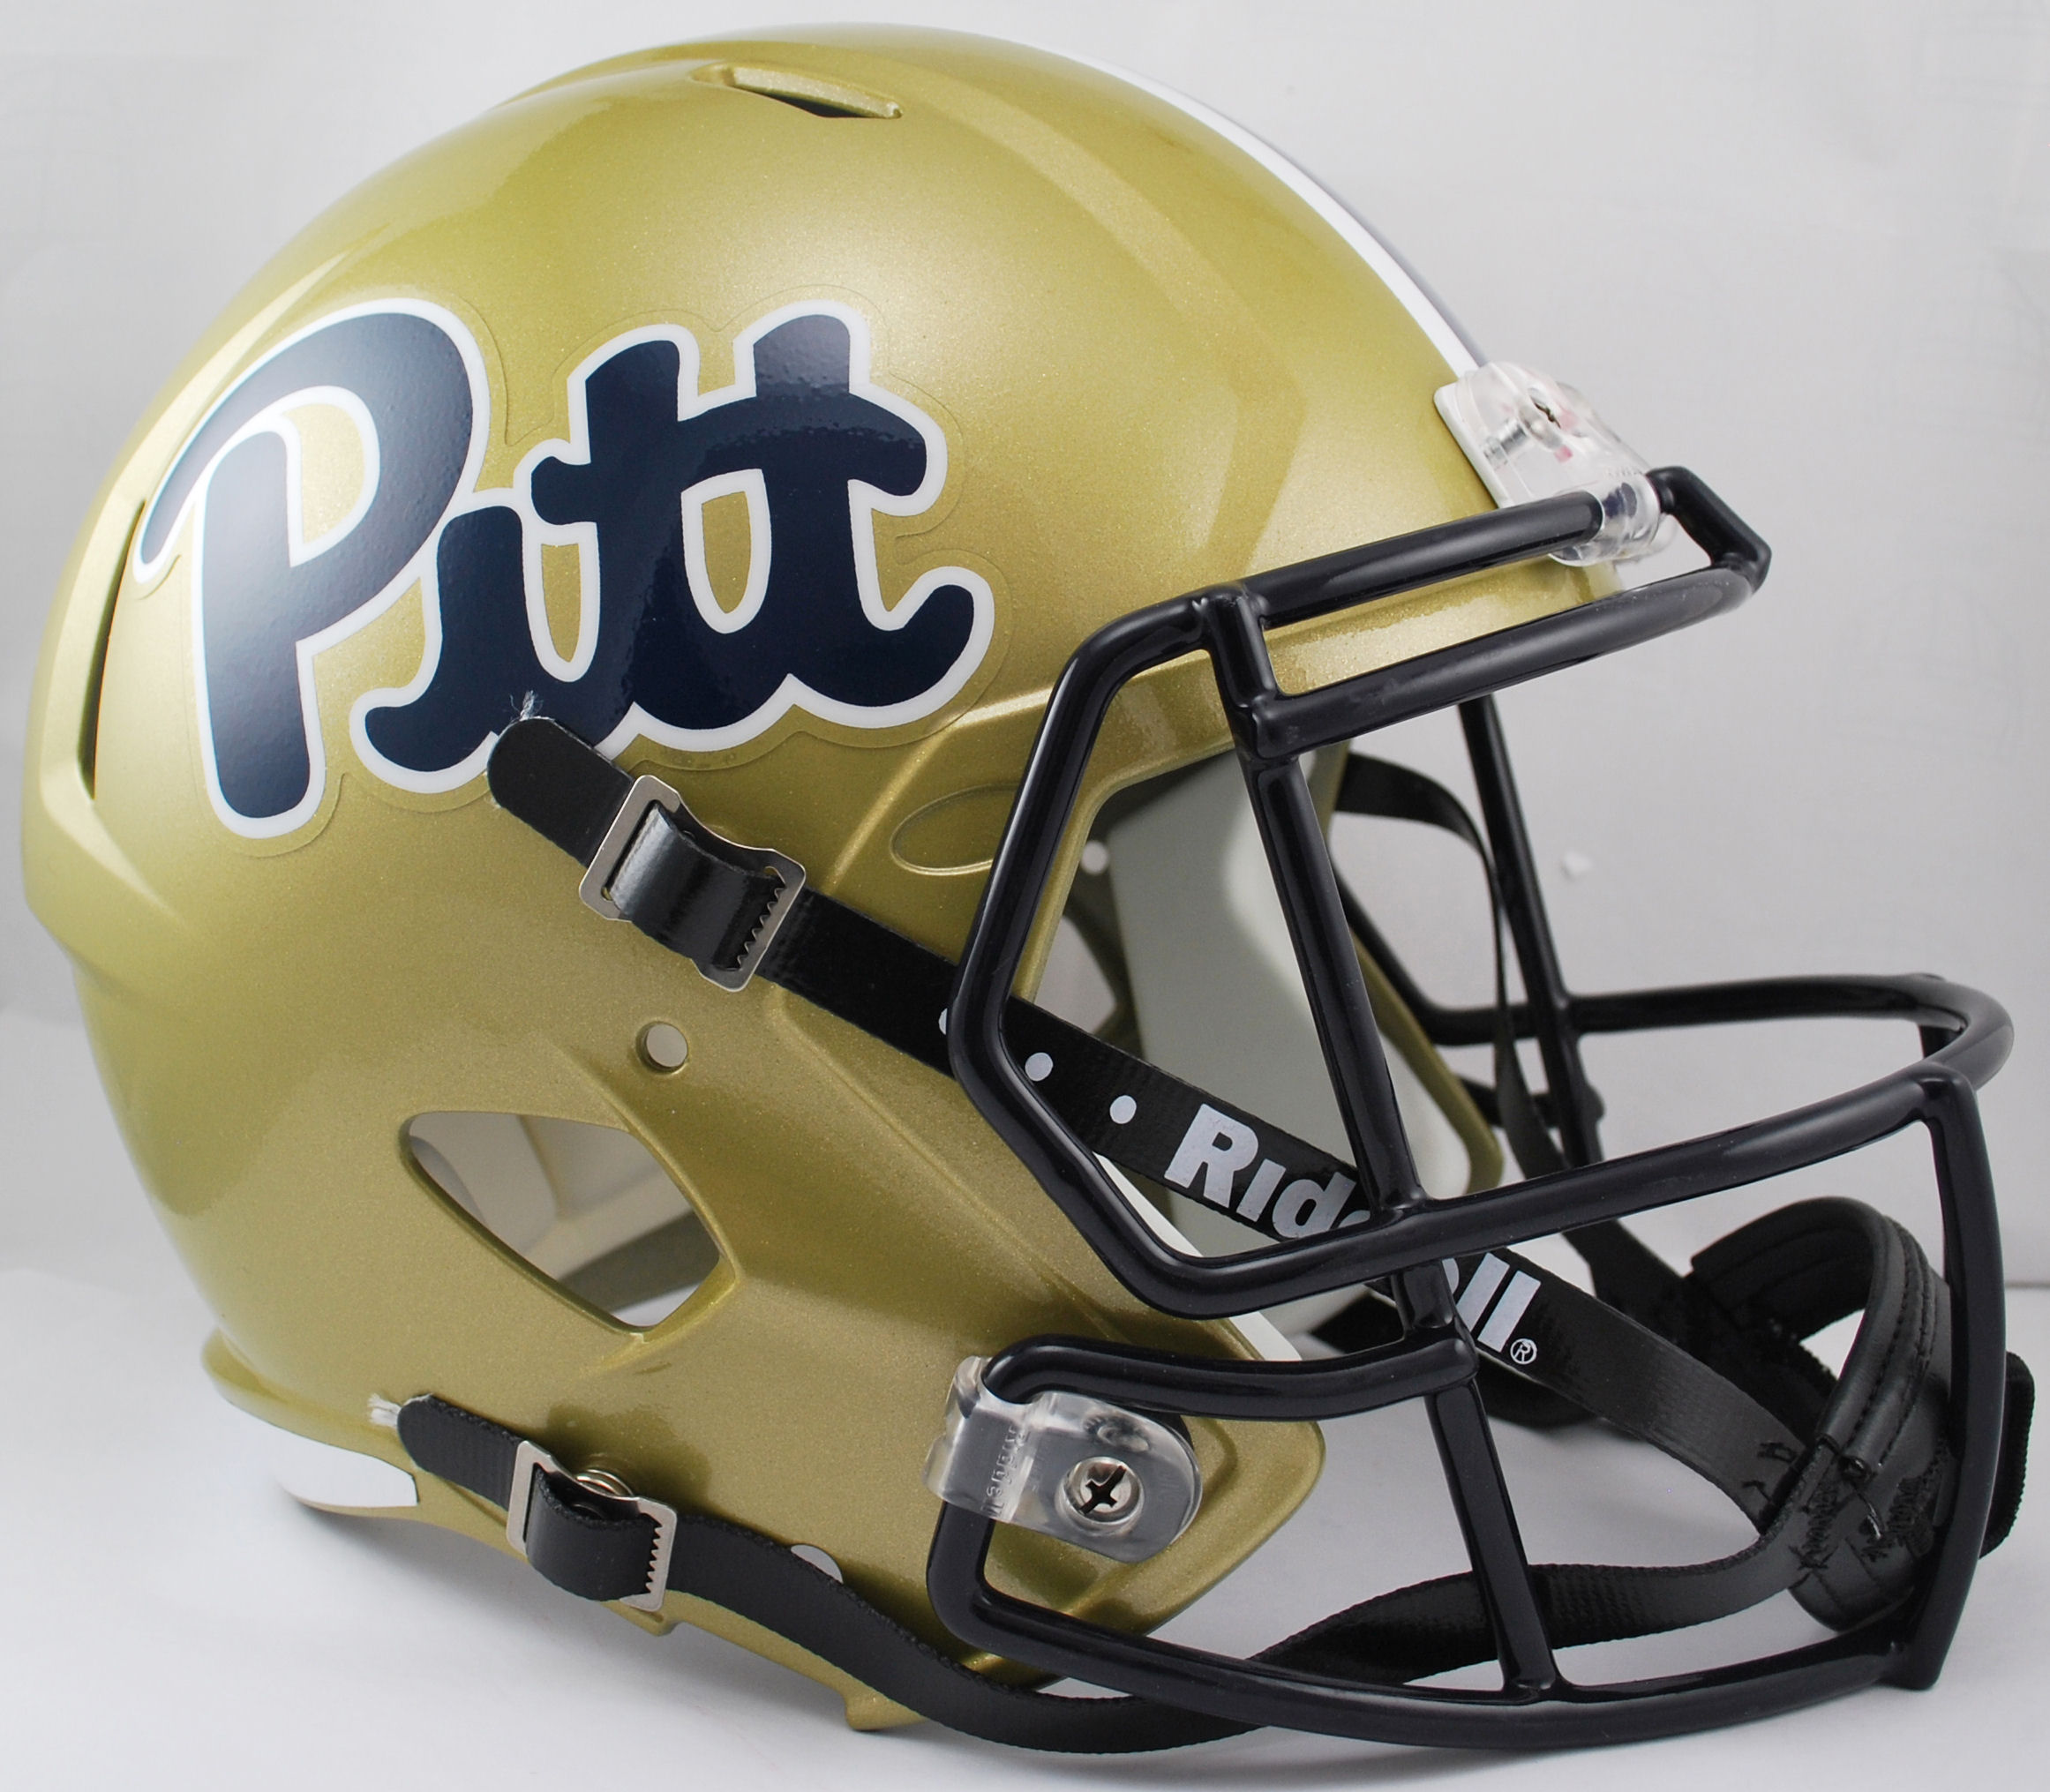 Pittsburgh Panthers Speed Replica Football Helmet <B>Pitt Script</B>